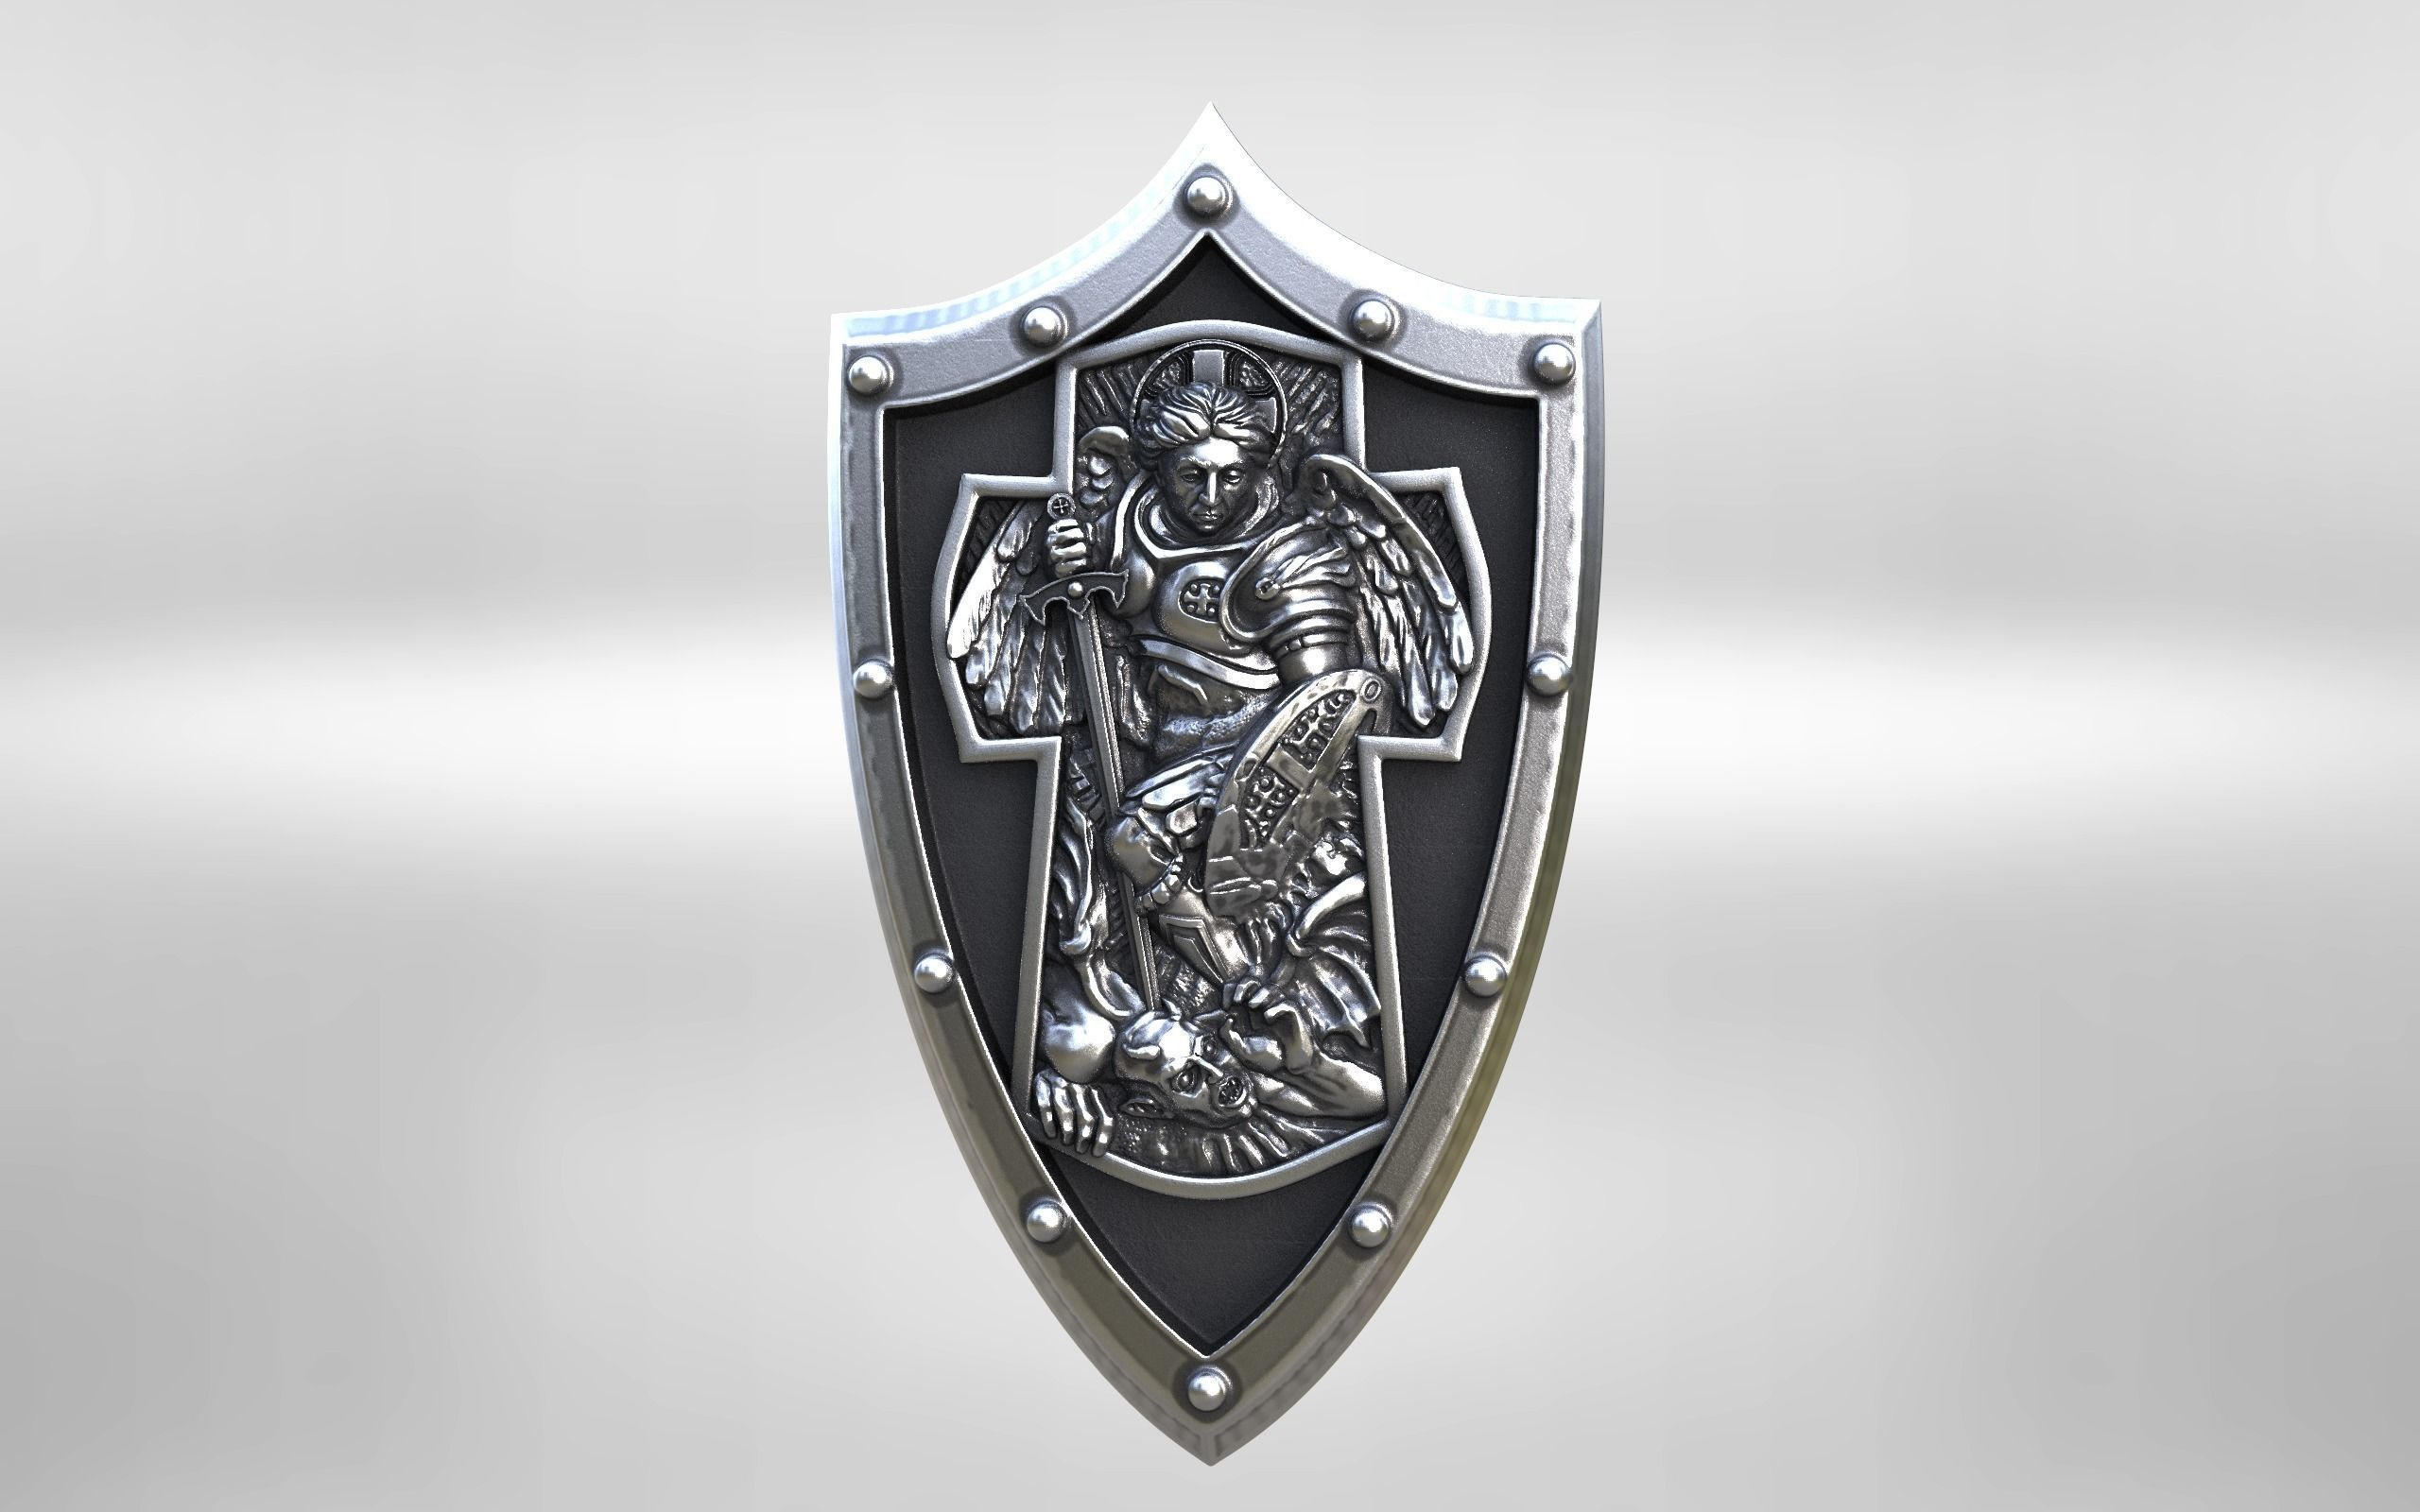 Archangel michael cross shield 3d print model archangel archangel michael cross shield 3d print model biocorpaavc Images